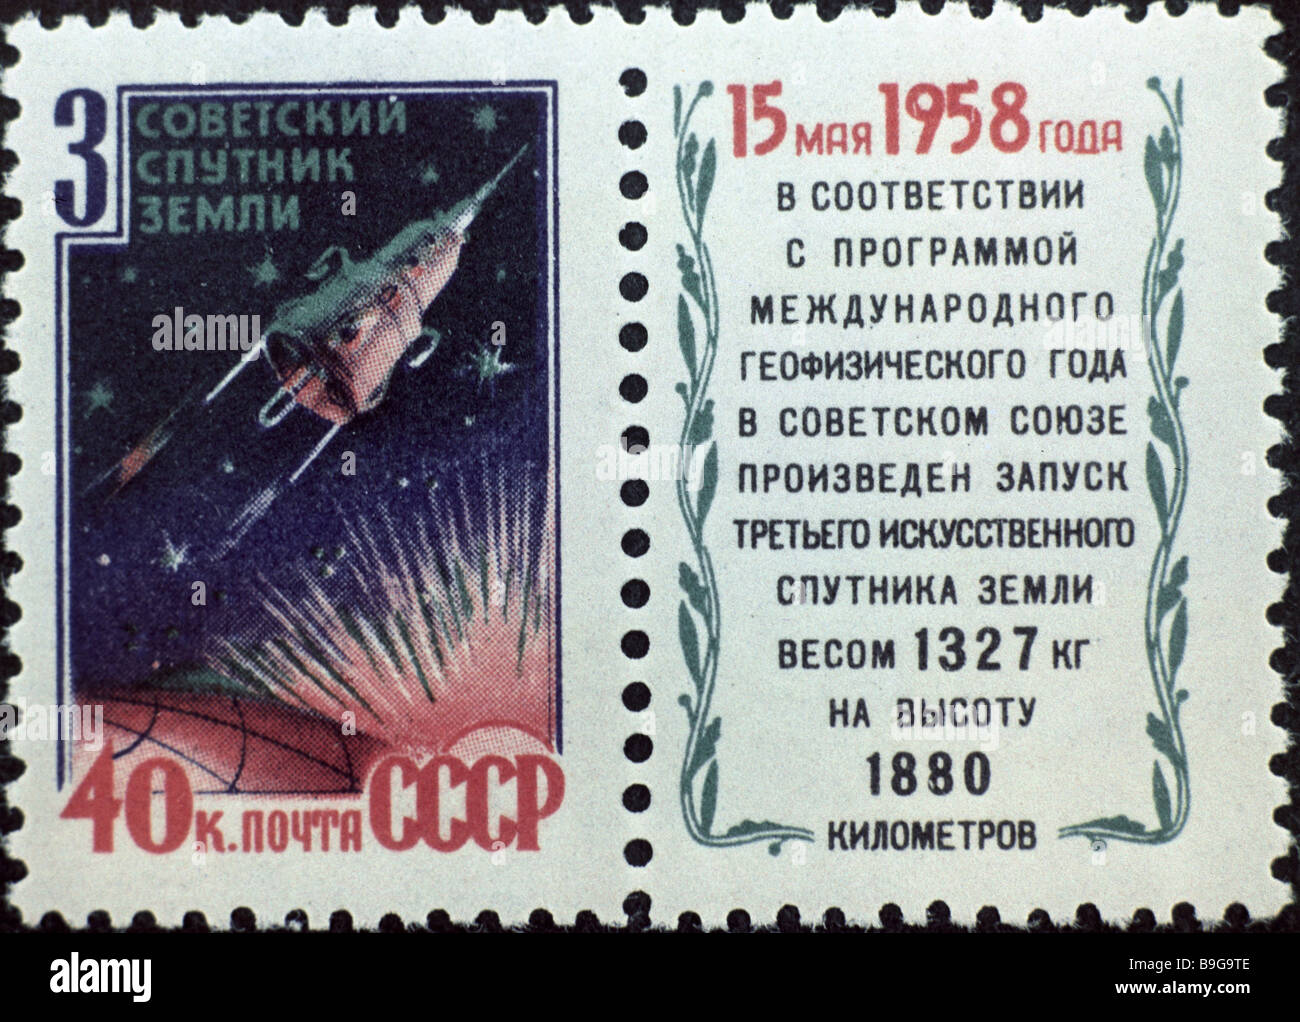 A postal stamp dedicated to the third Earth satellite launch May 15 1958 - Stock Image